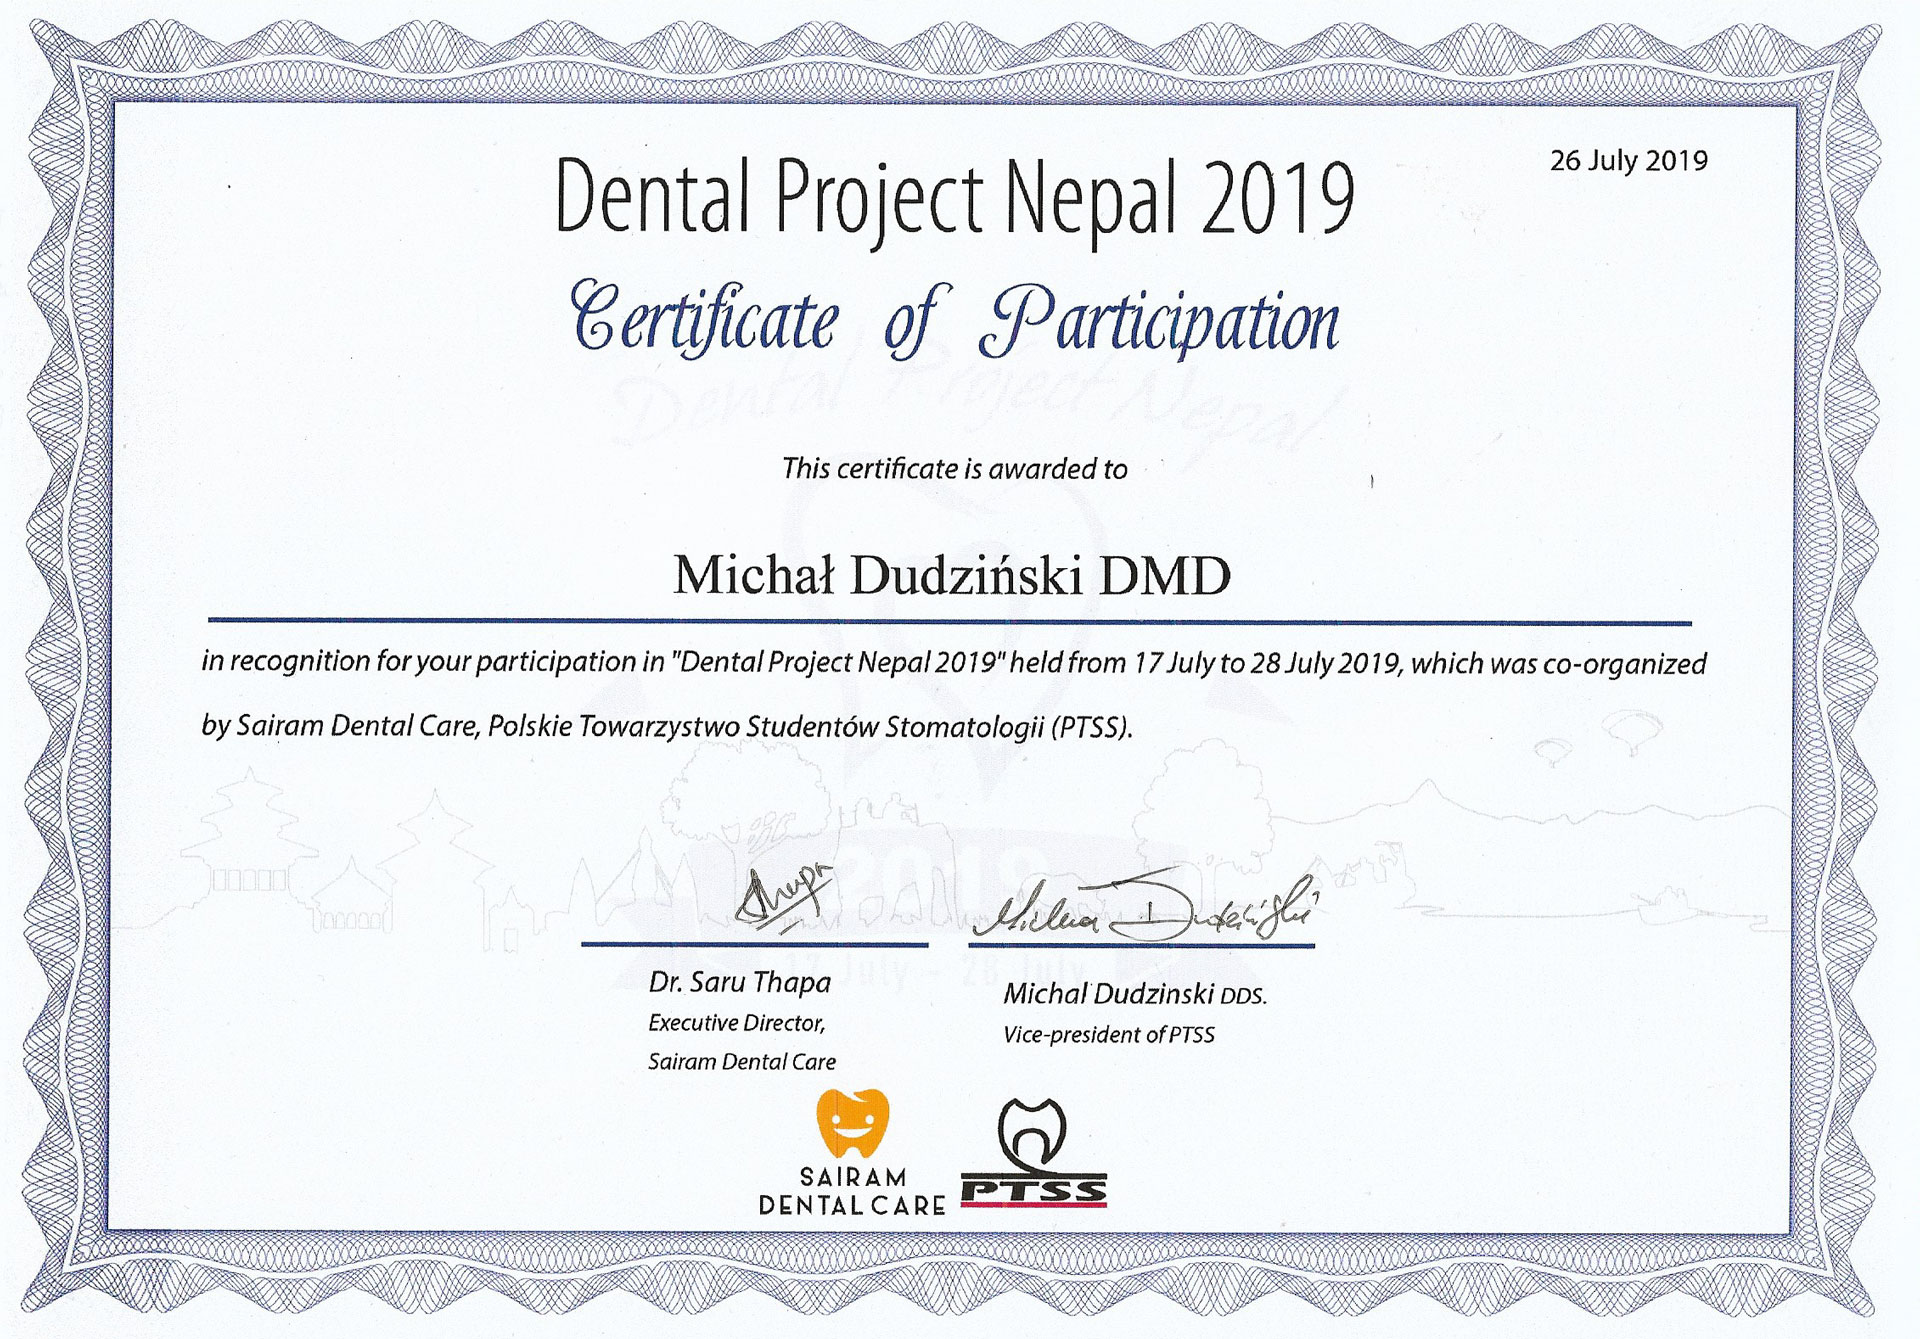 Dental Project Nepal 2019